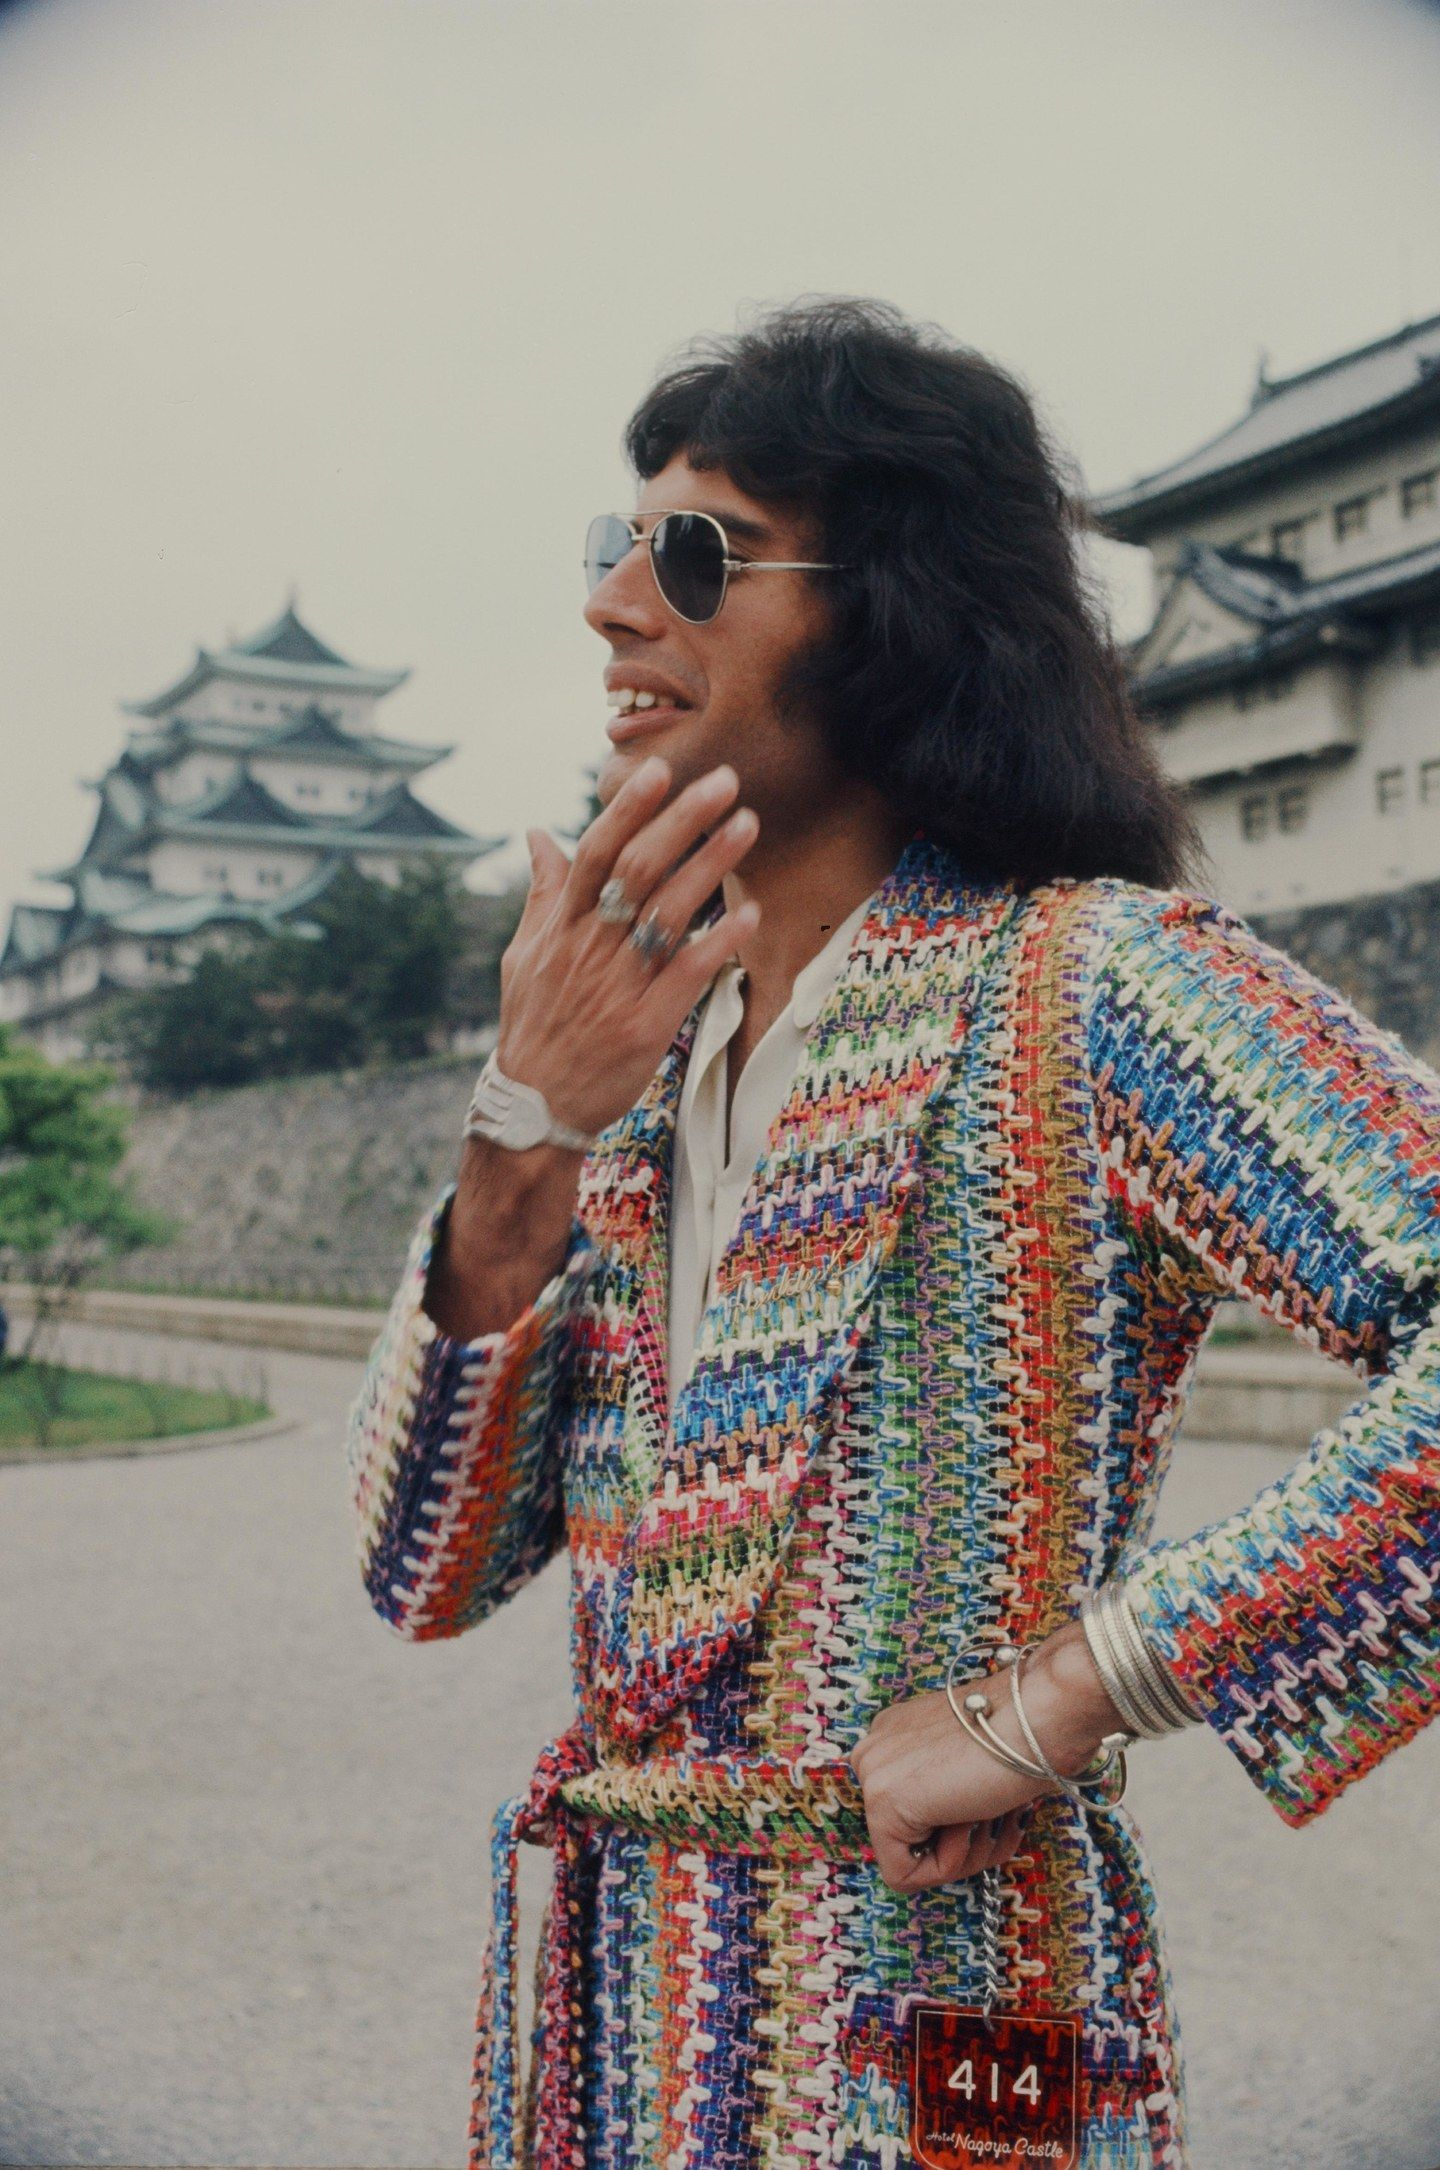 37 vintage photos to inspire your festival look, from Jimi Hendrix to Freddie Mercury